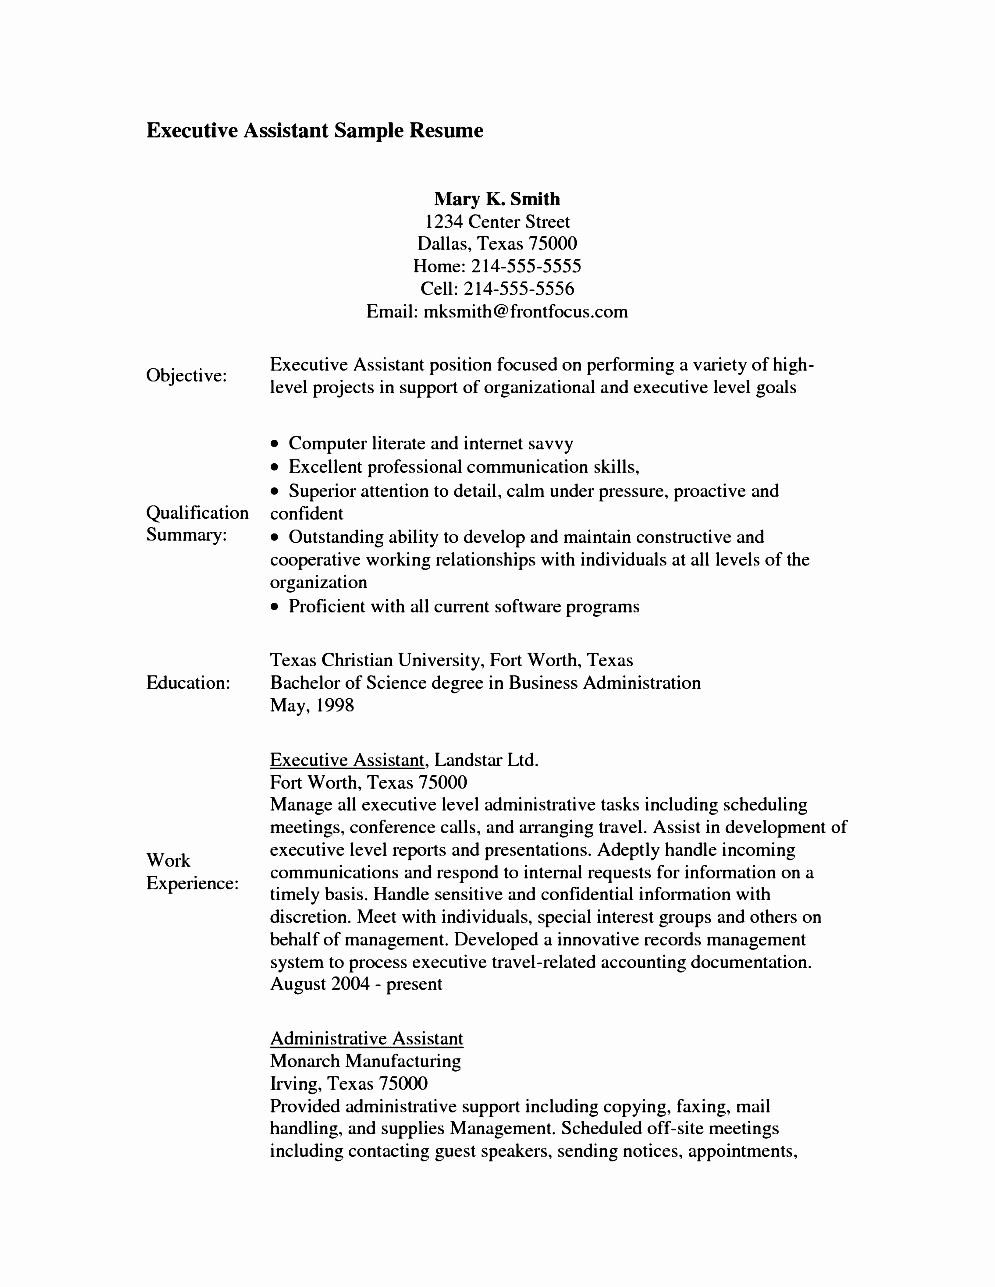 Medical assistant Resume Objective Examples Entry Level